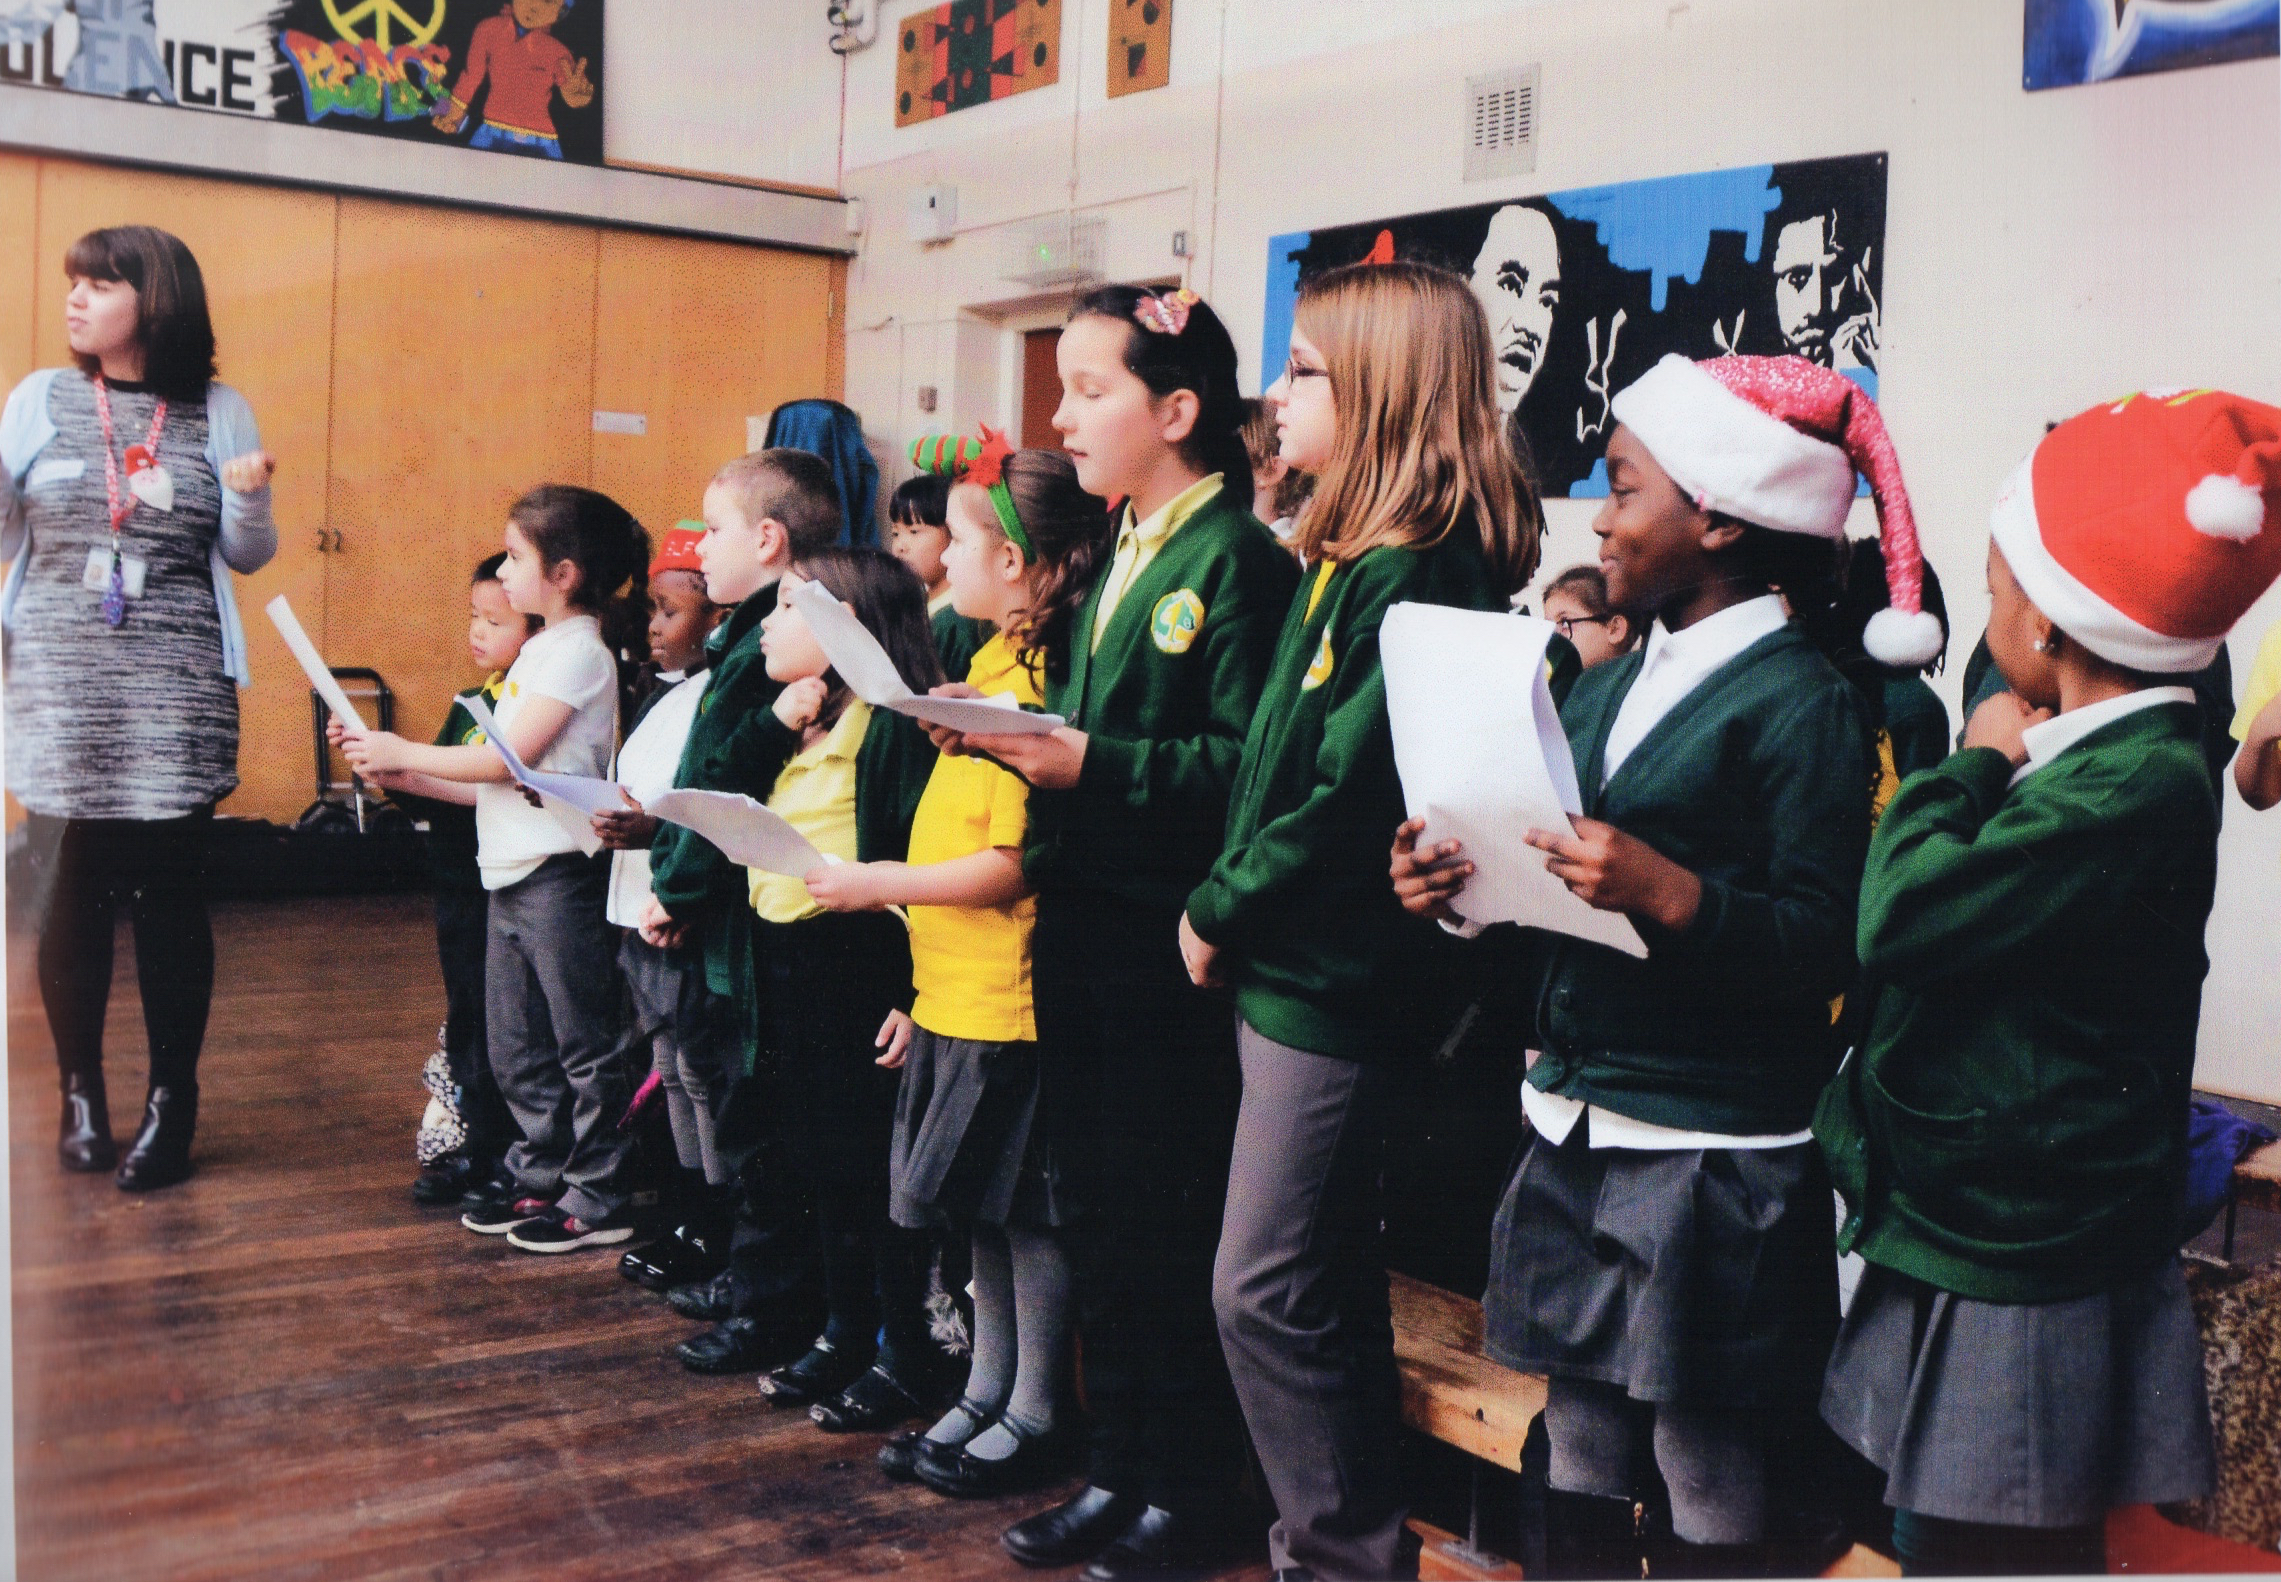 ADFS Christmas Singalong 2018 featuring the choir from Burnt Oak school.